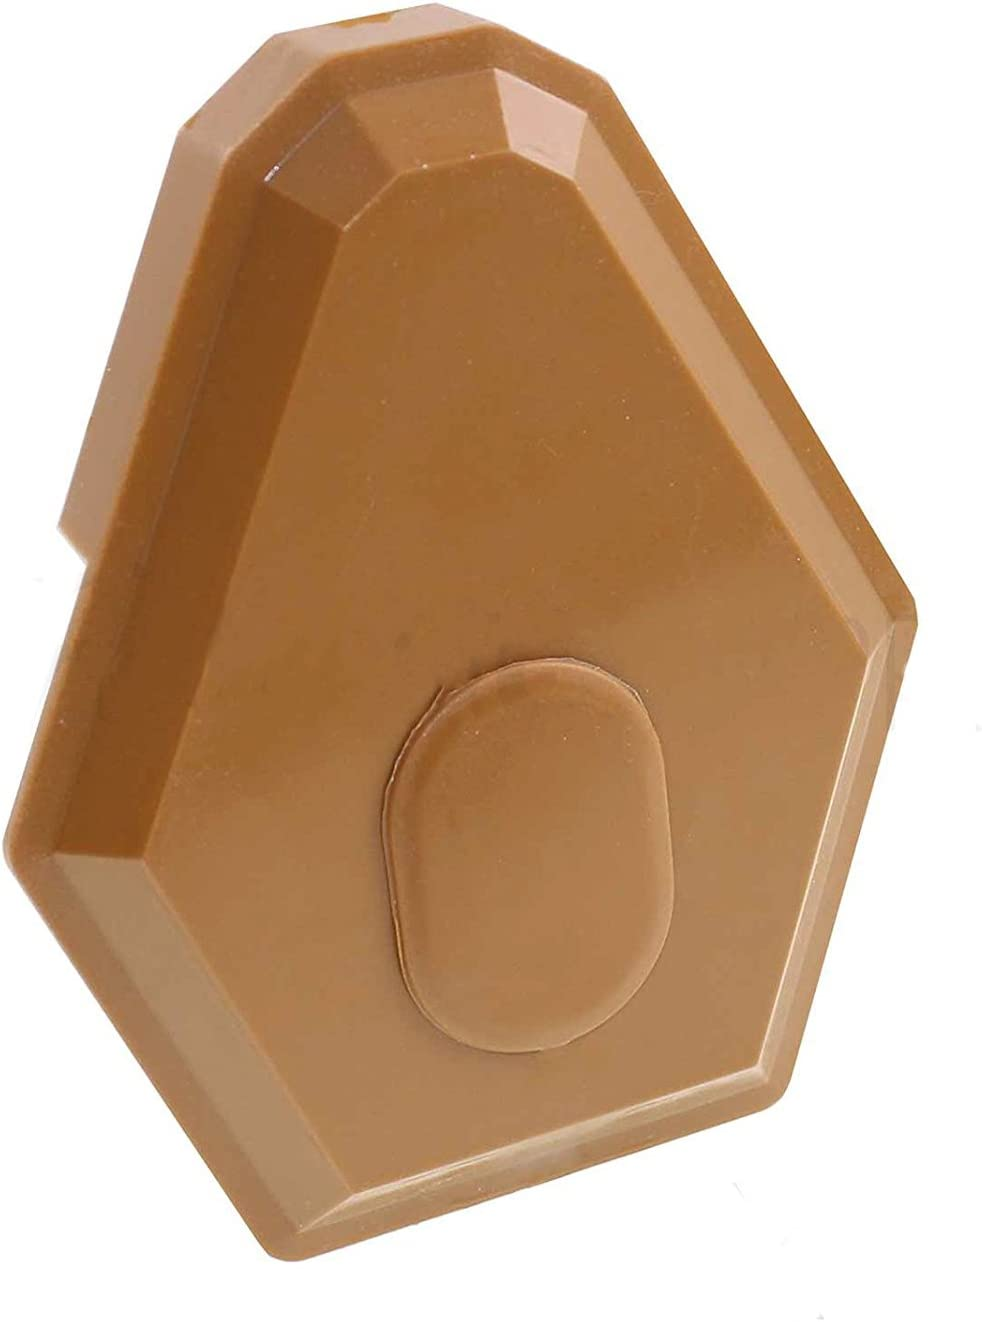 1 x Caramel Synseal Main Glazing Bar End Cap XTEC1 Global Conservatory Roof Spar End Stop